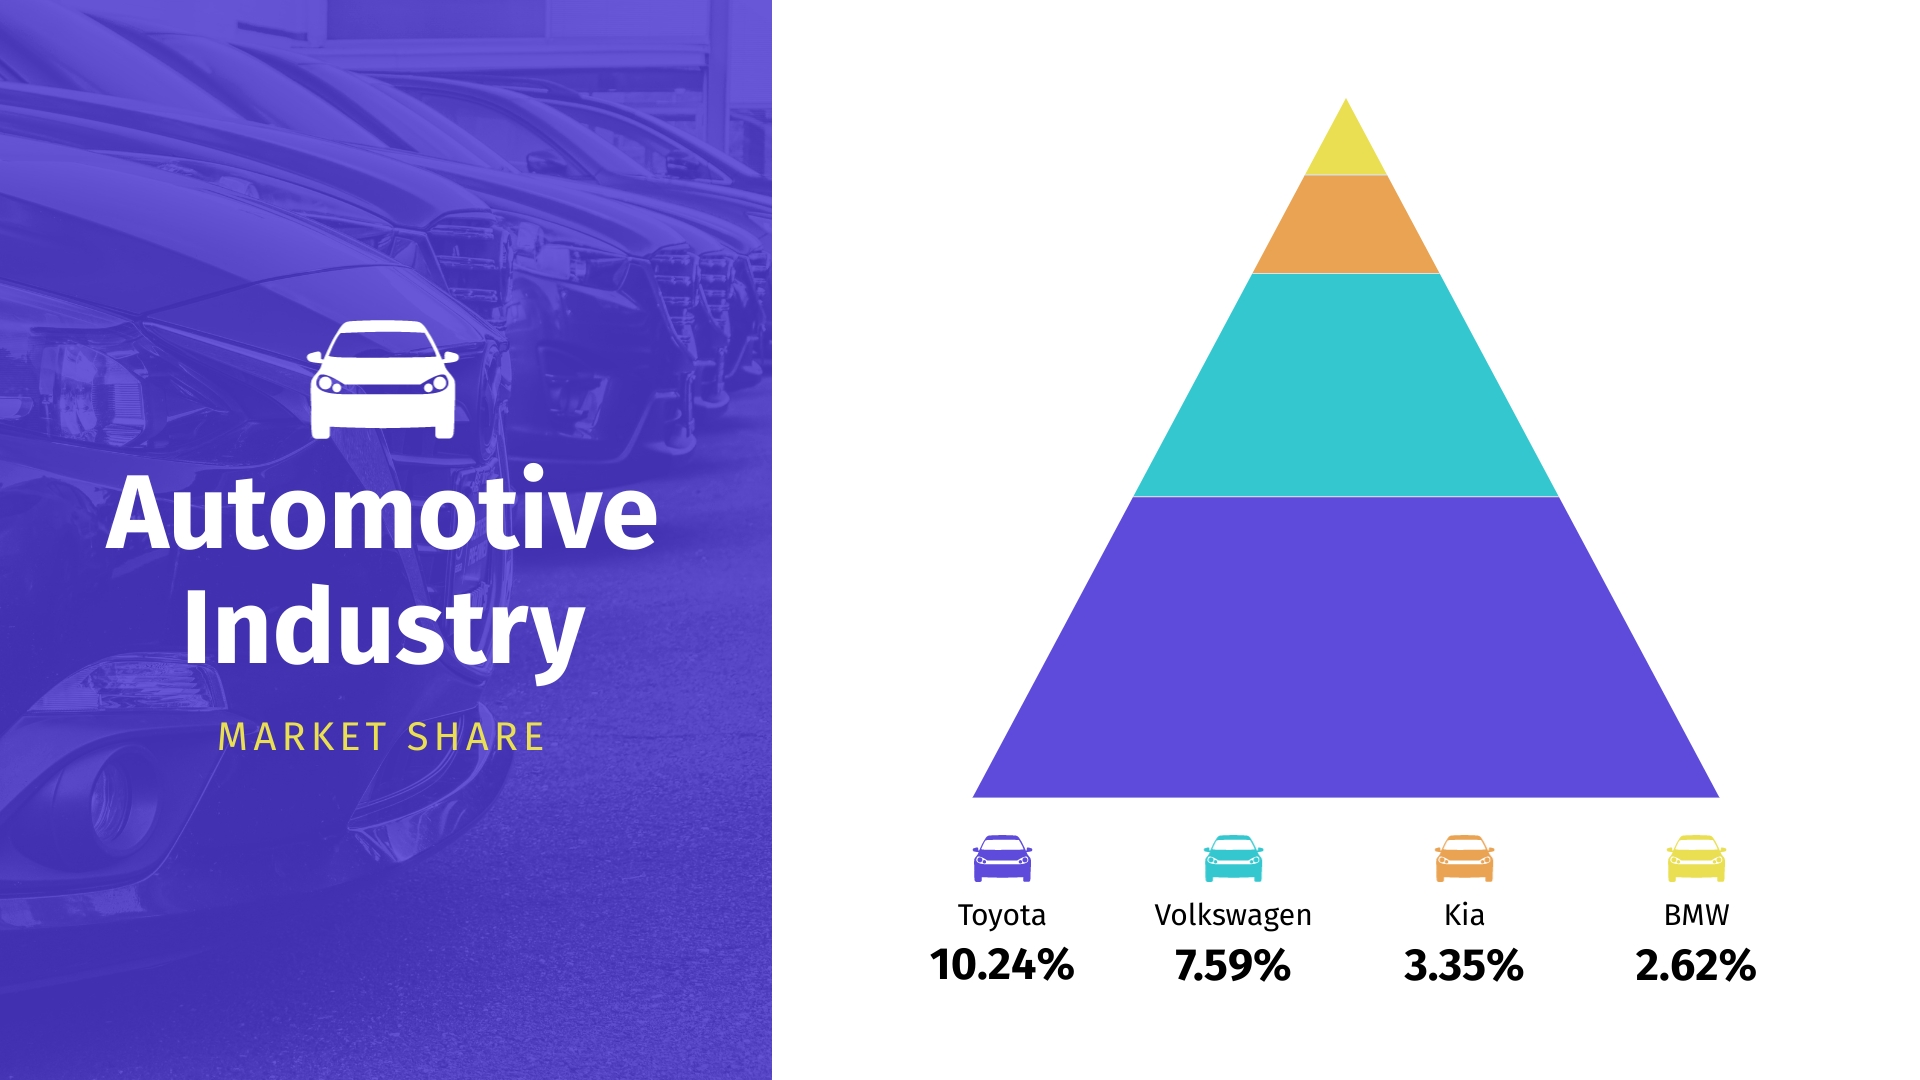 Automotive Industry Market Share Pyramid Chart Template